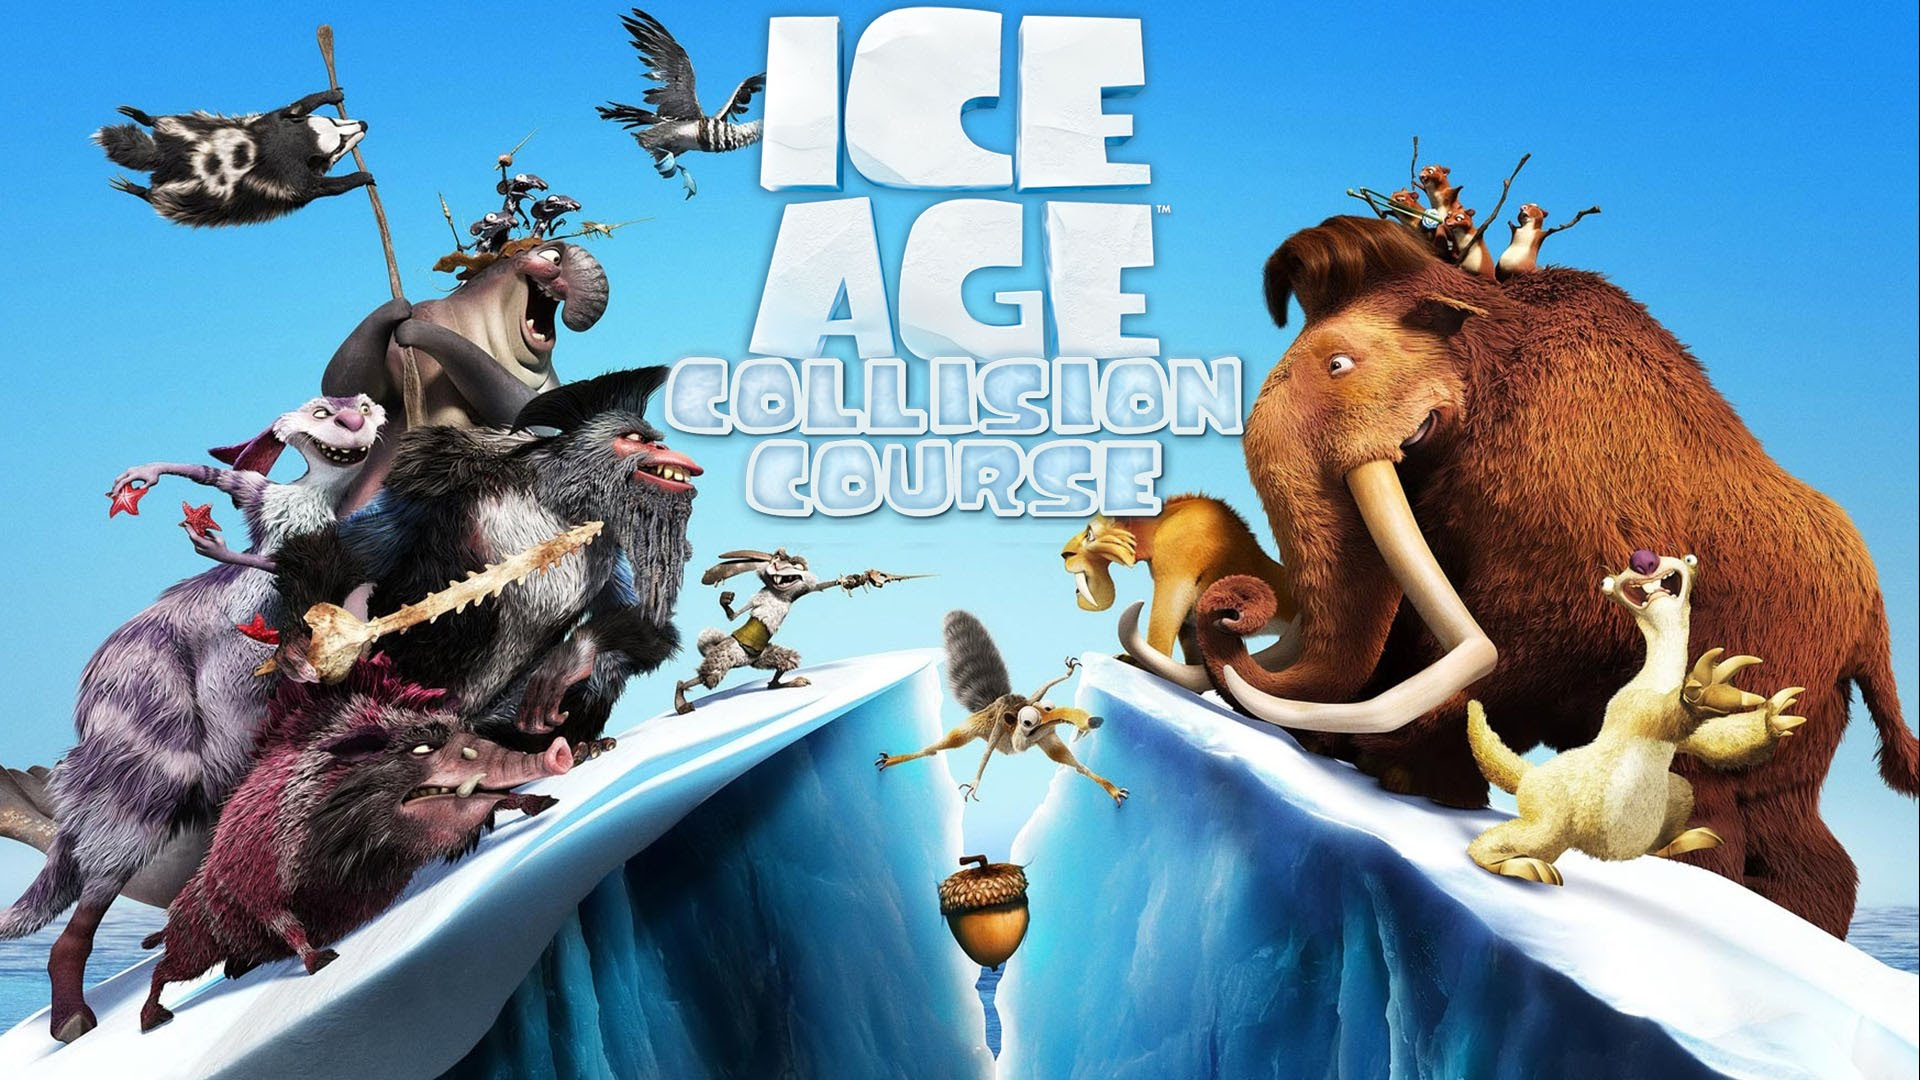 Ice Age 5 Collision Course Hd Movies 4k Wallpapers Images